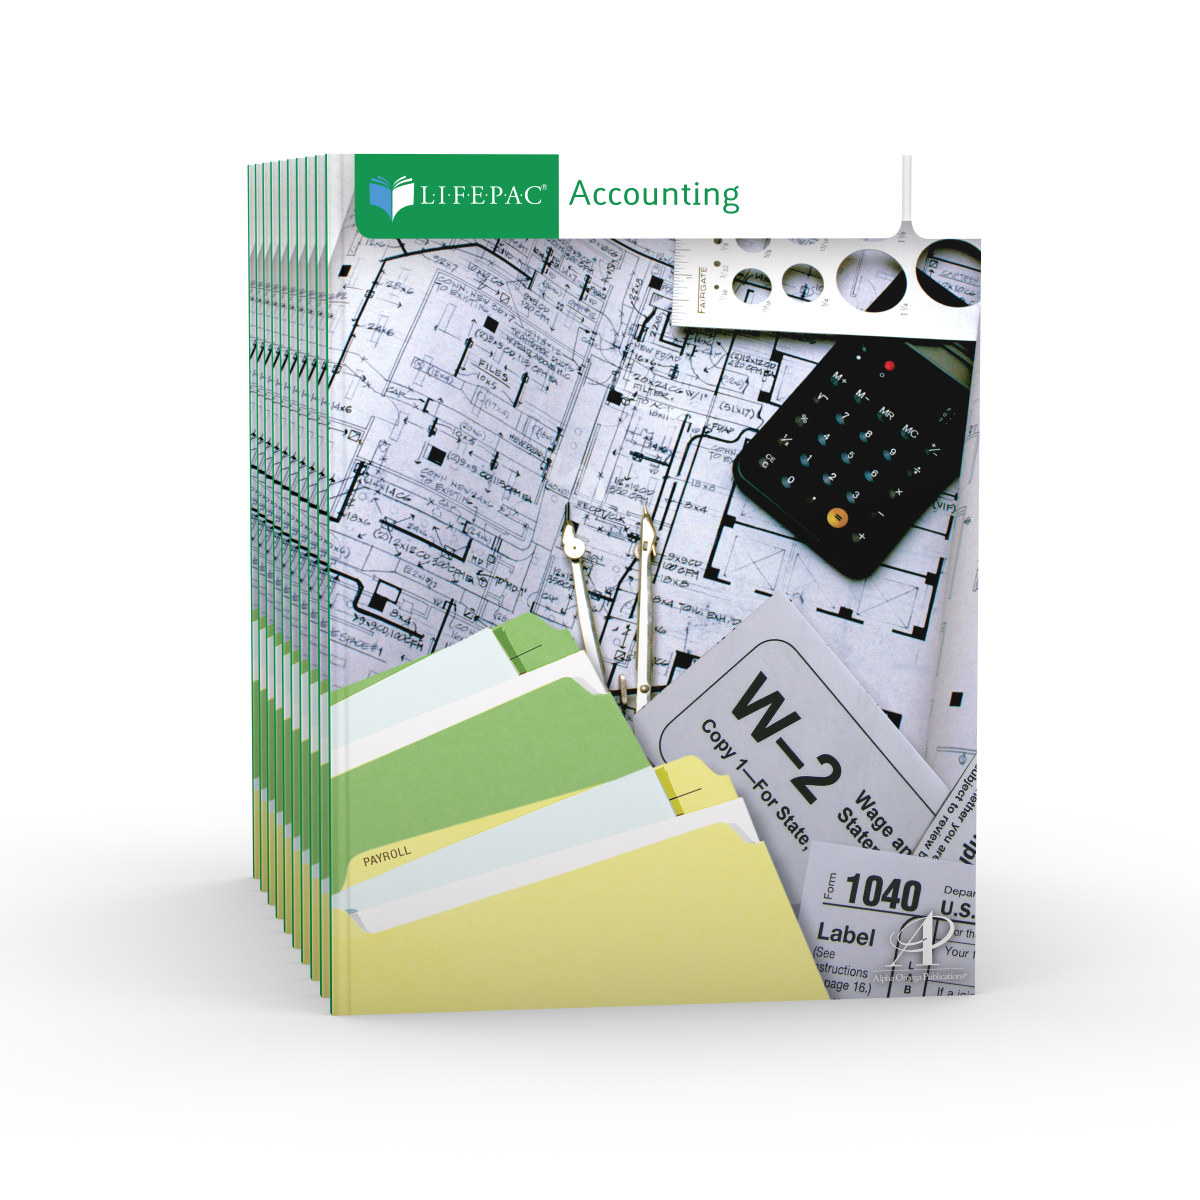 LIFEPAC® Accounting 10-Unit Set